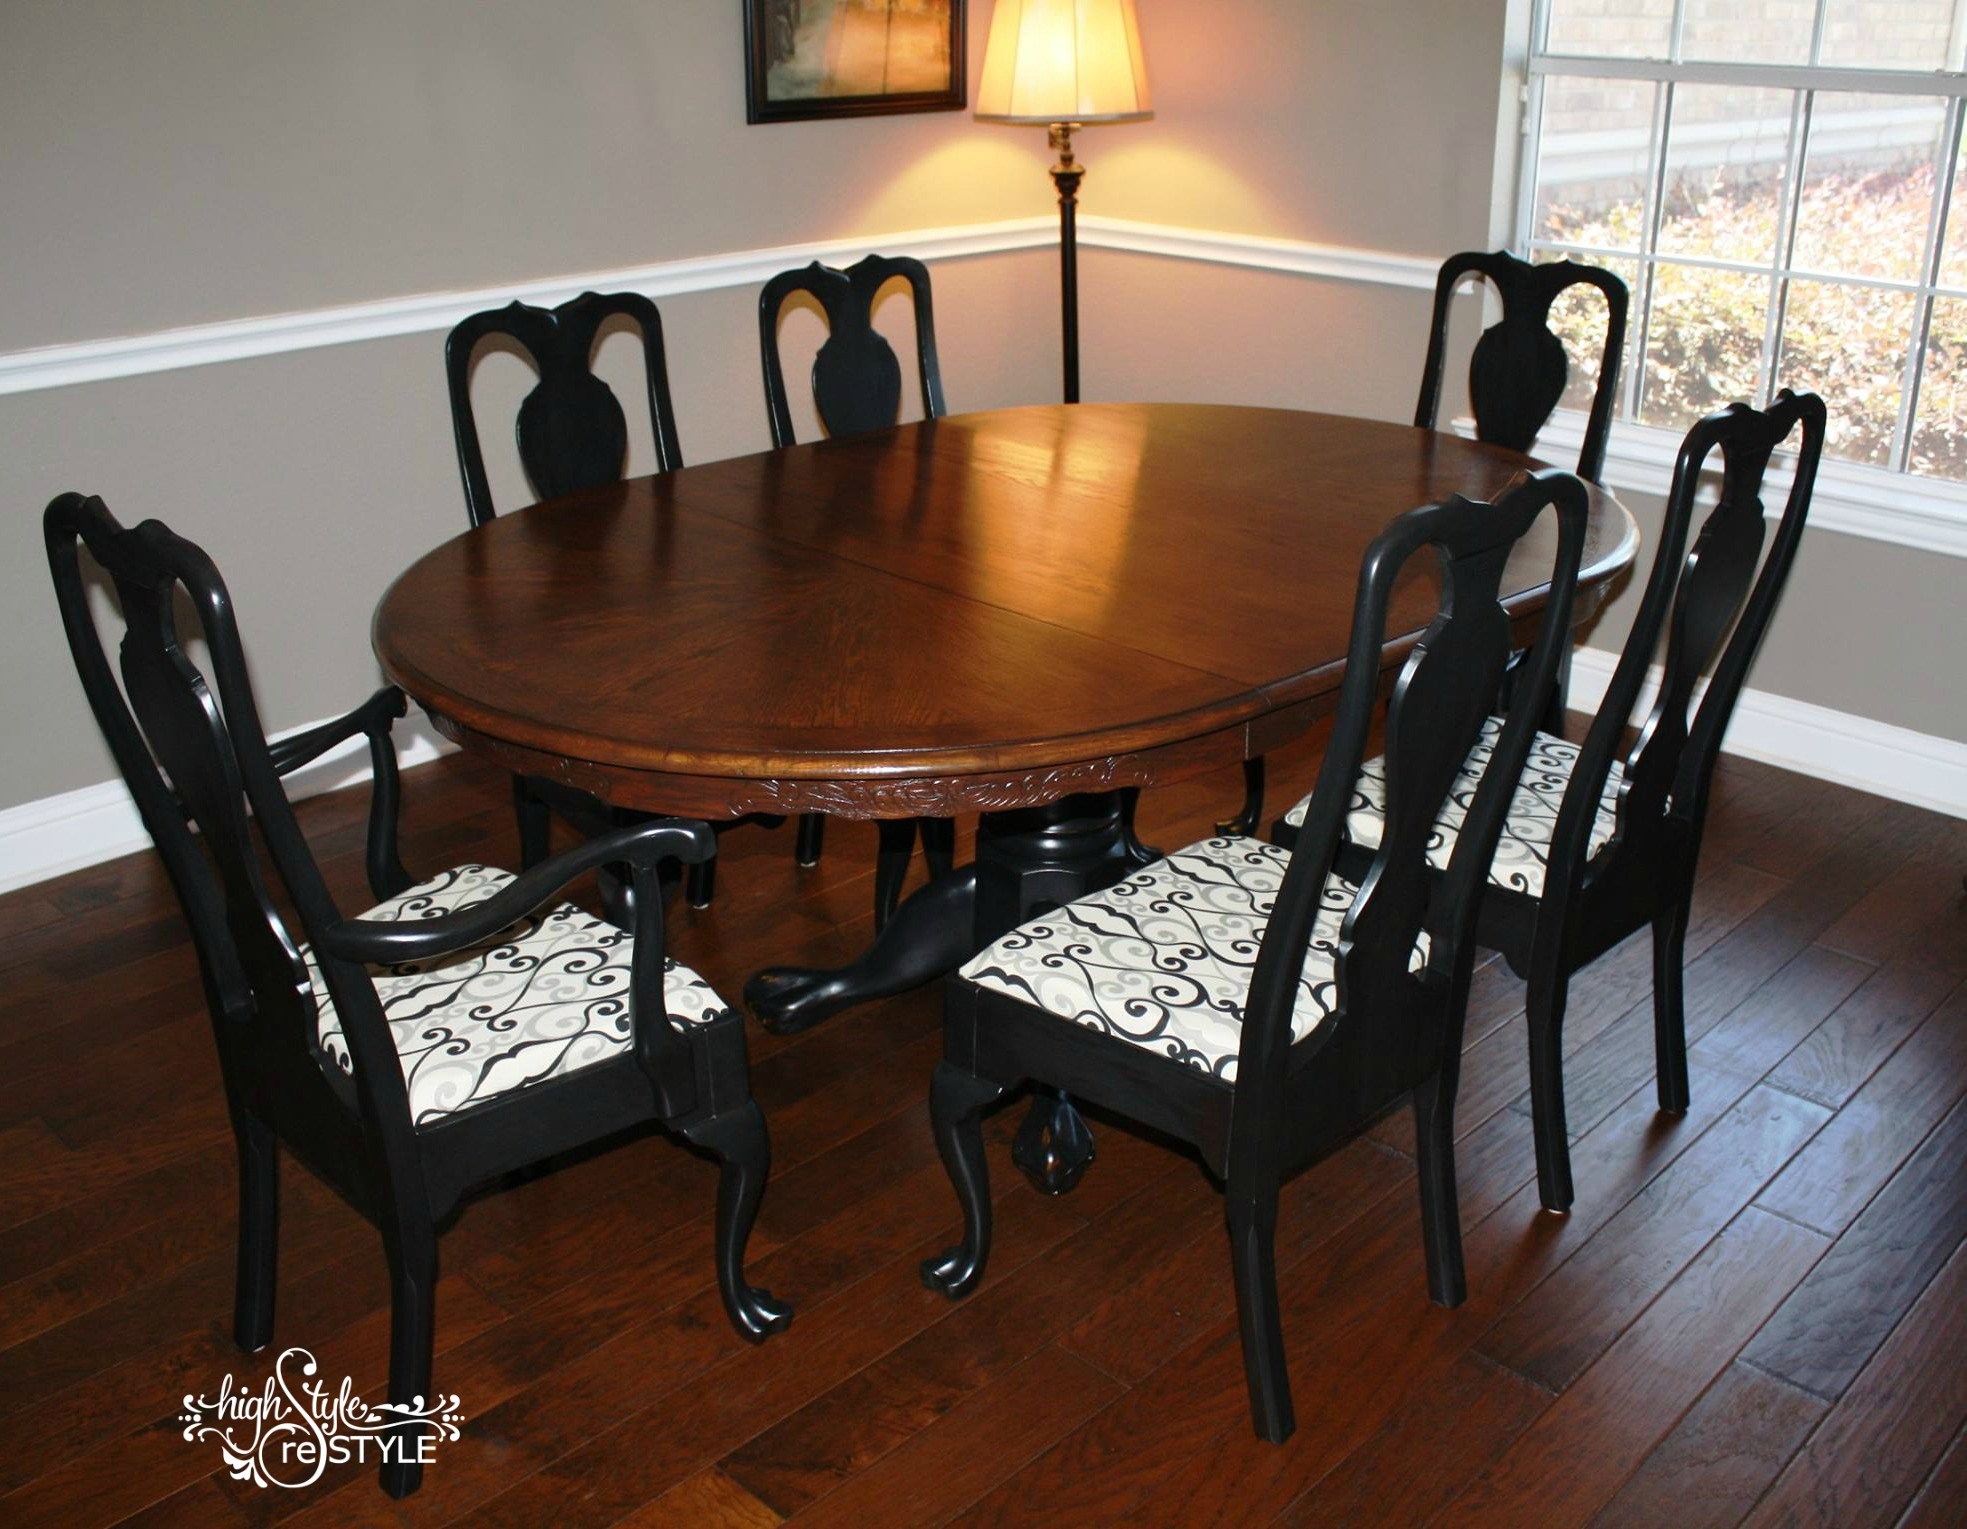 From outdated Oak to a wonderful Walnut blend, this table is ready for some serious entertaining!